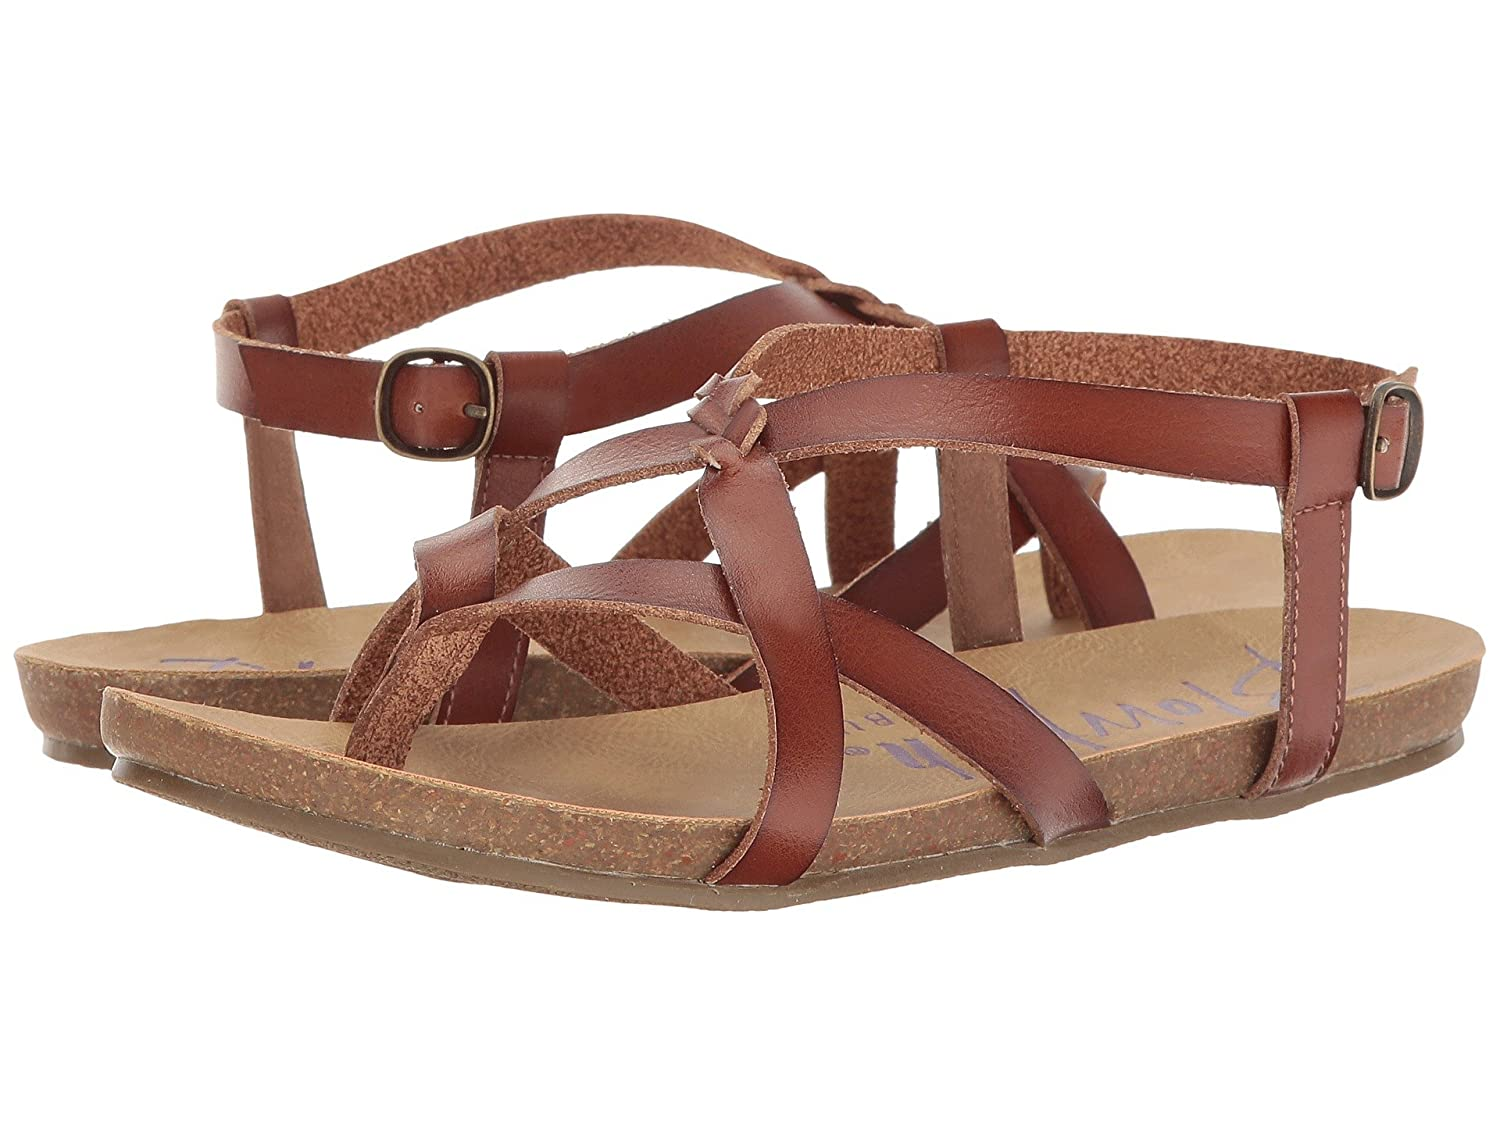 Blowfish / Women's Granola Fisherman Sandal B07B3RQRR3 39-40 M EU / Blowfish 8.5 B(M) US|Scotch Dyecut 06eb08